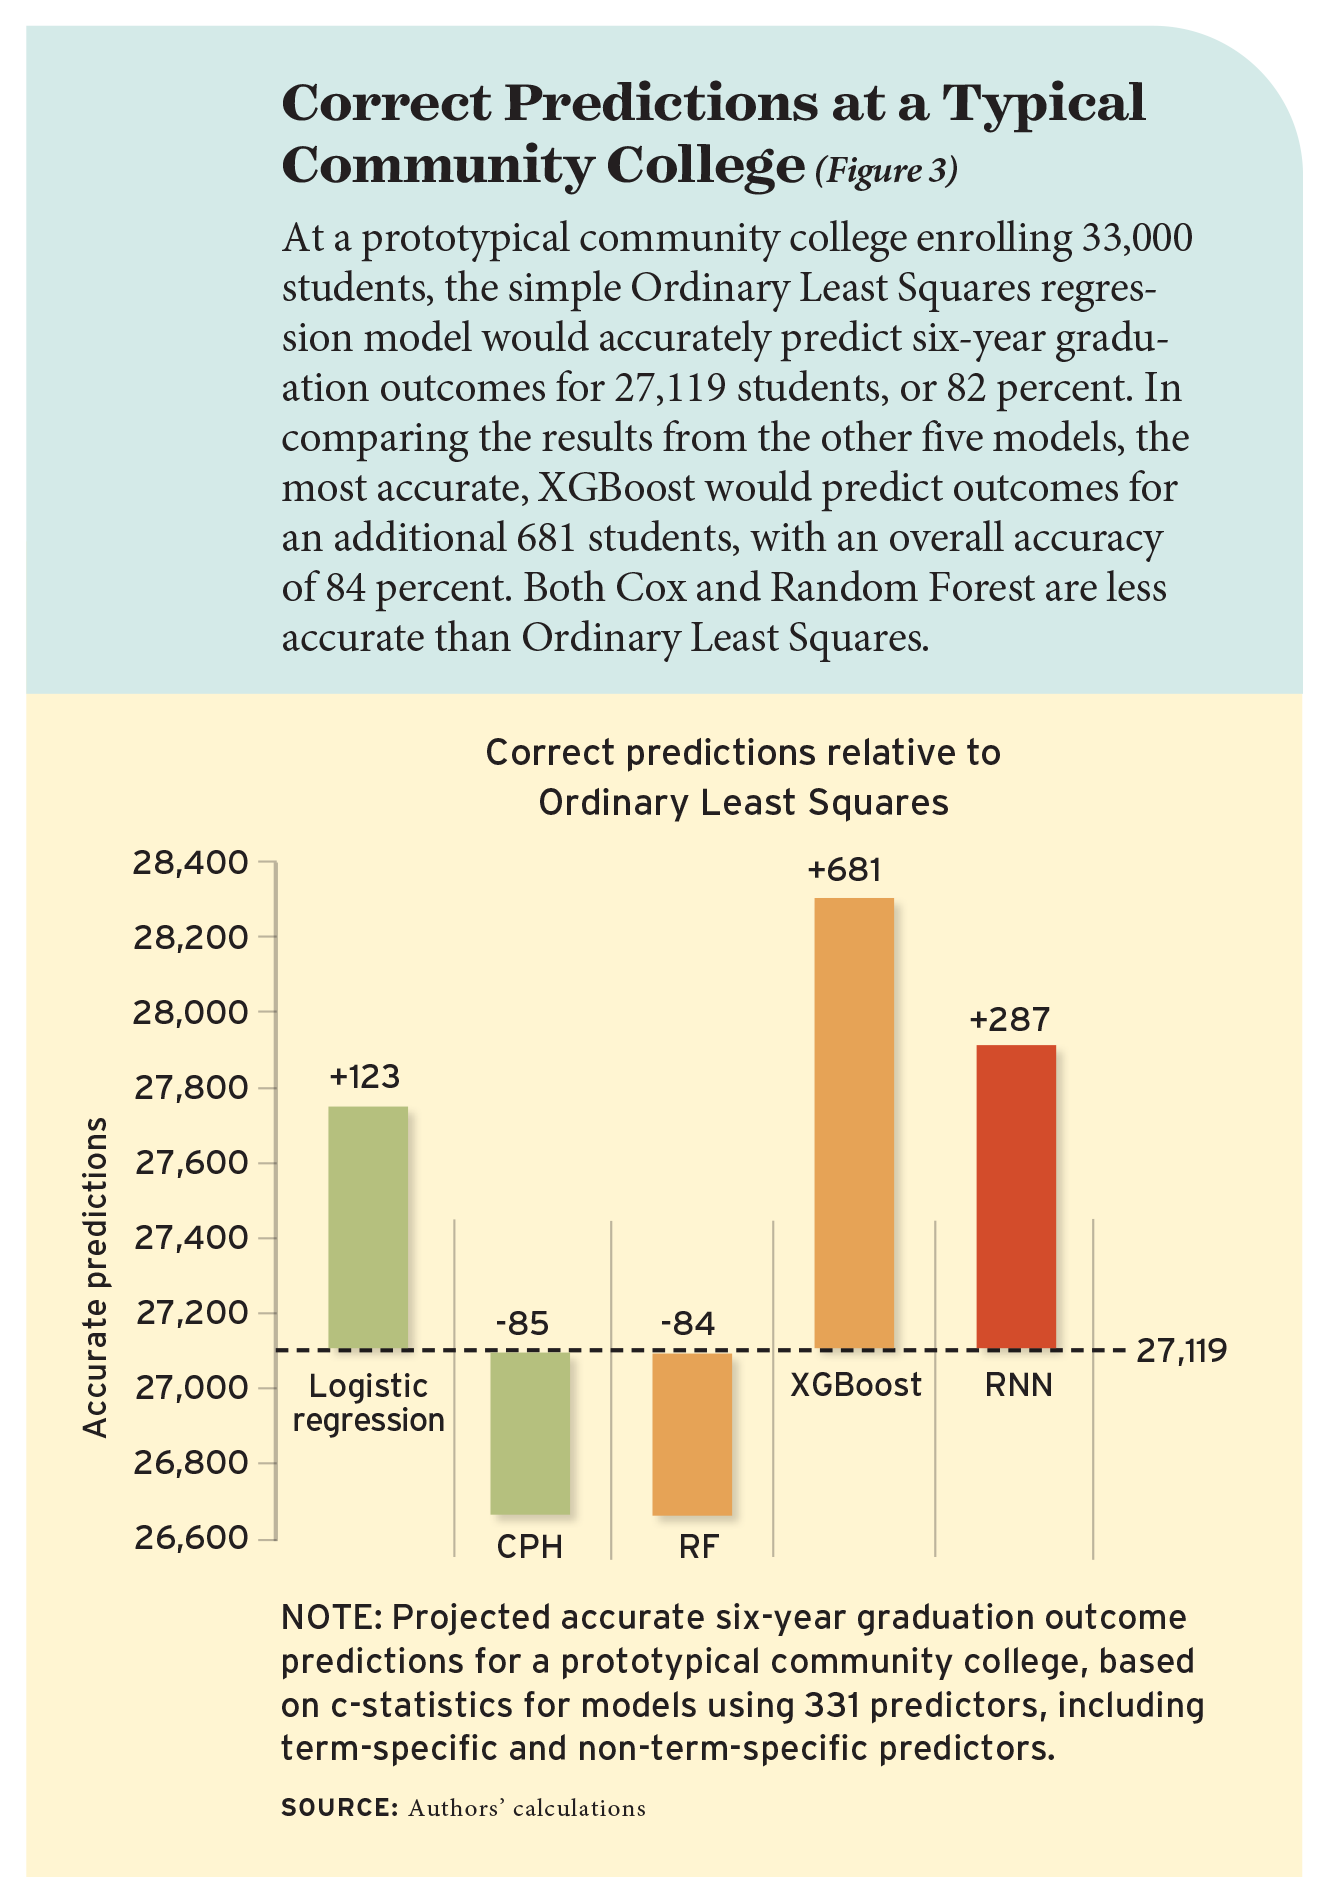 Figure 3: Correct Predictions at a Typical Community College